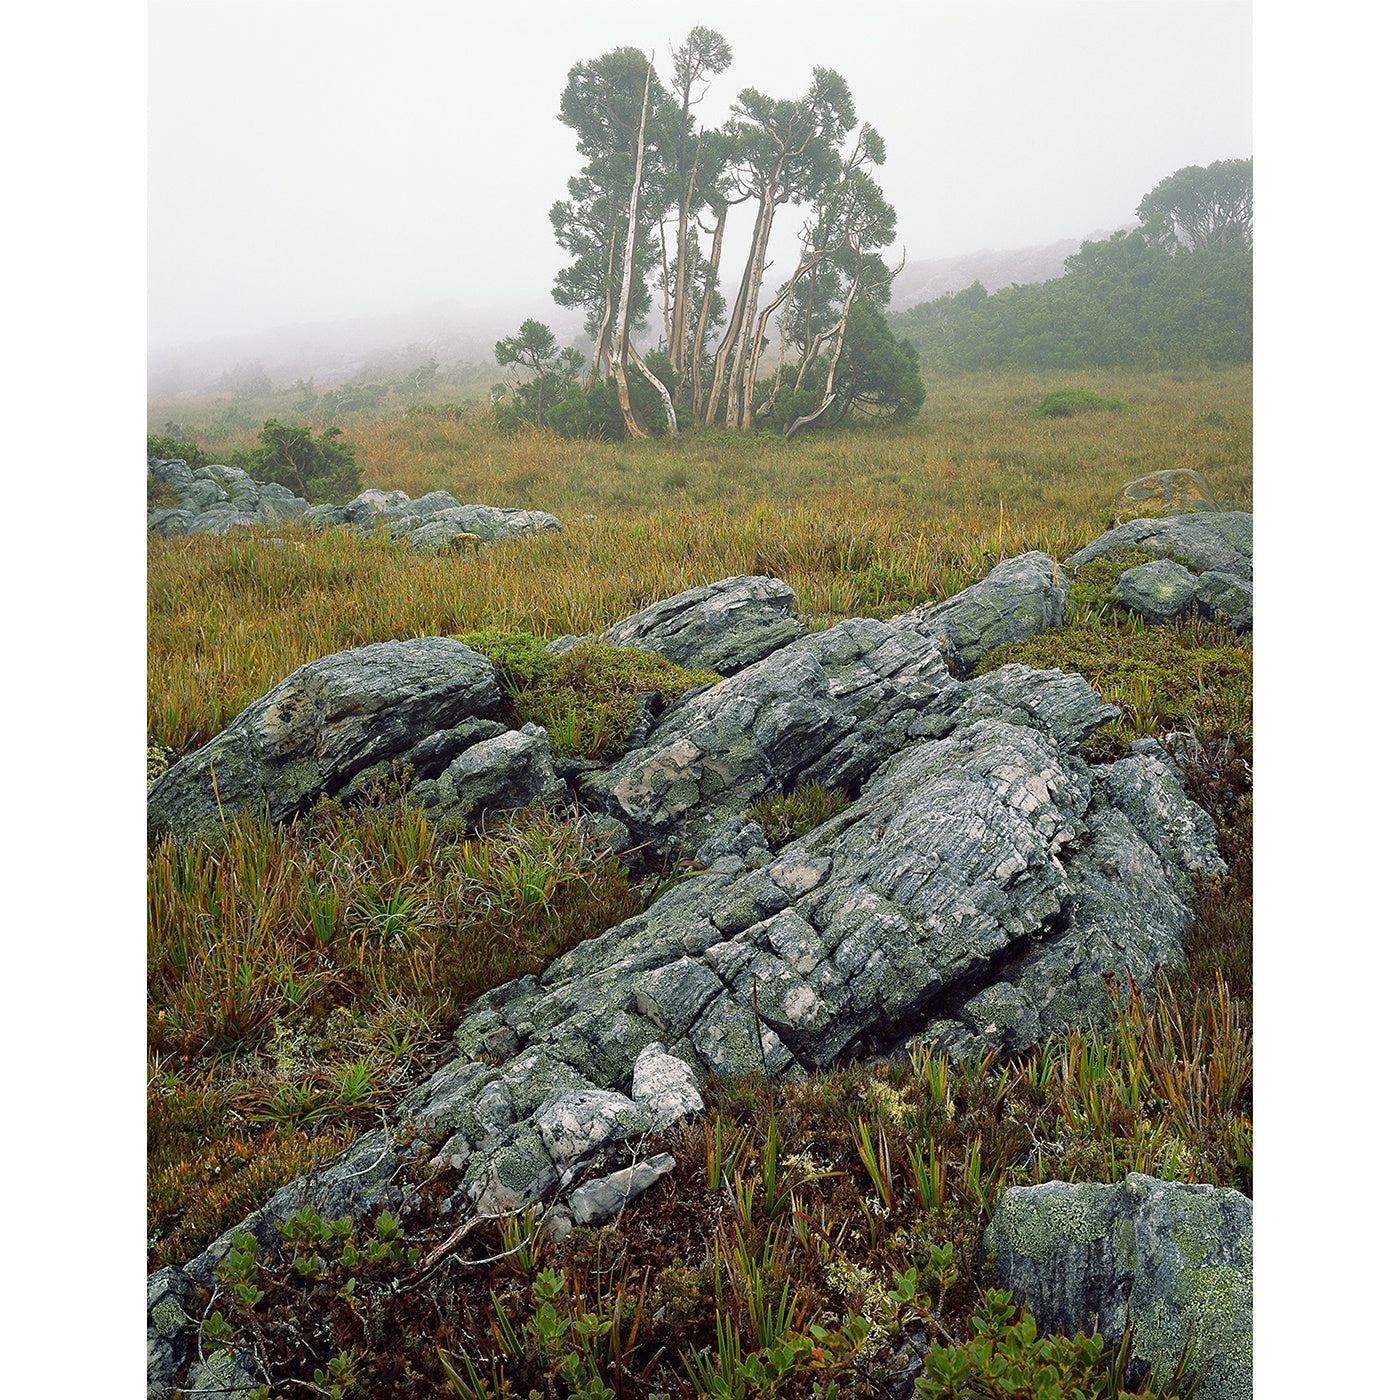 Peter Dombrovskis - Pencil Pines in mist, Southwest National Park